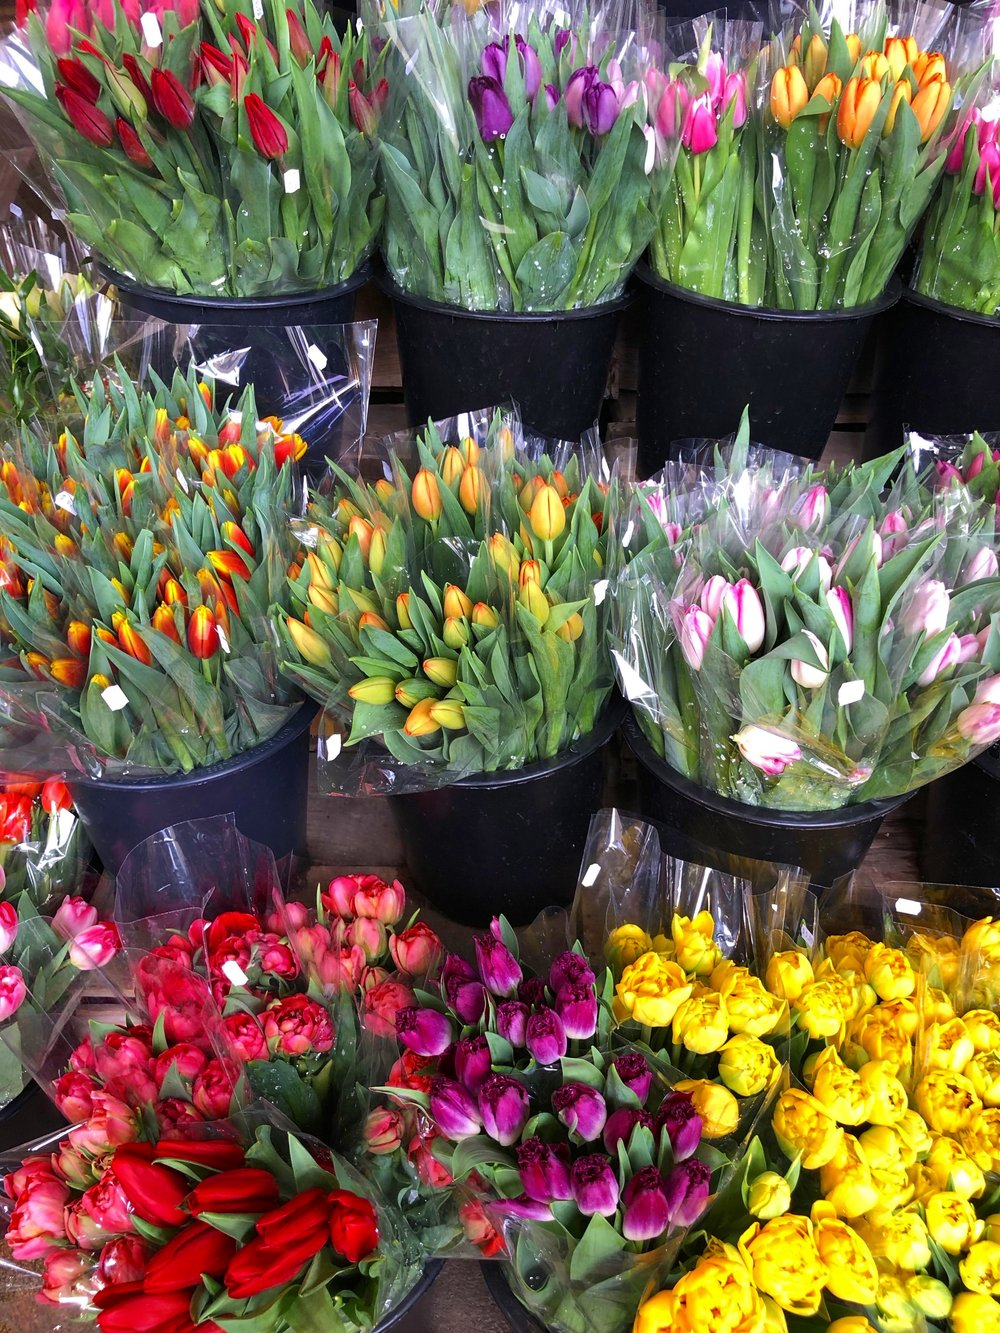 Tulips are on point this season and on sale this week!